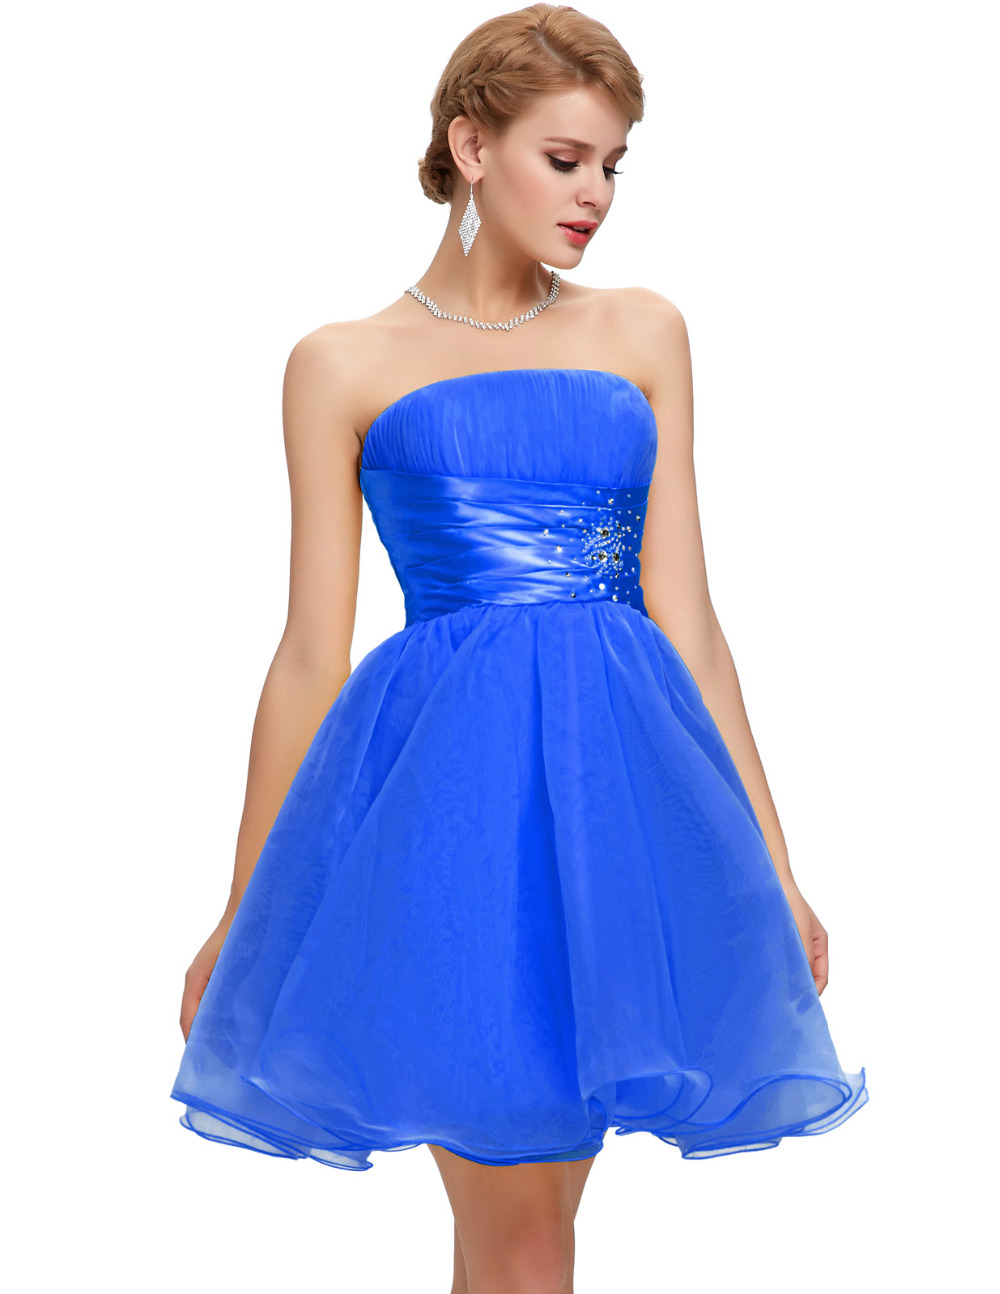 Short Prom Dresses Under $50 Robe De Bal Courte Grace karin Black White  Blue Yellow Ball